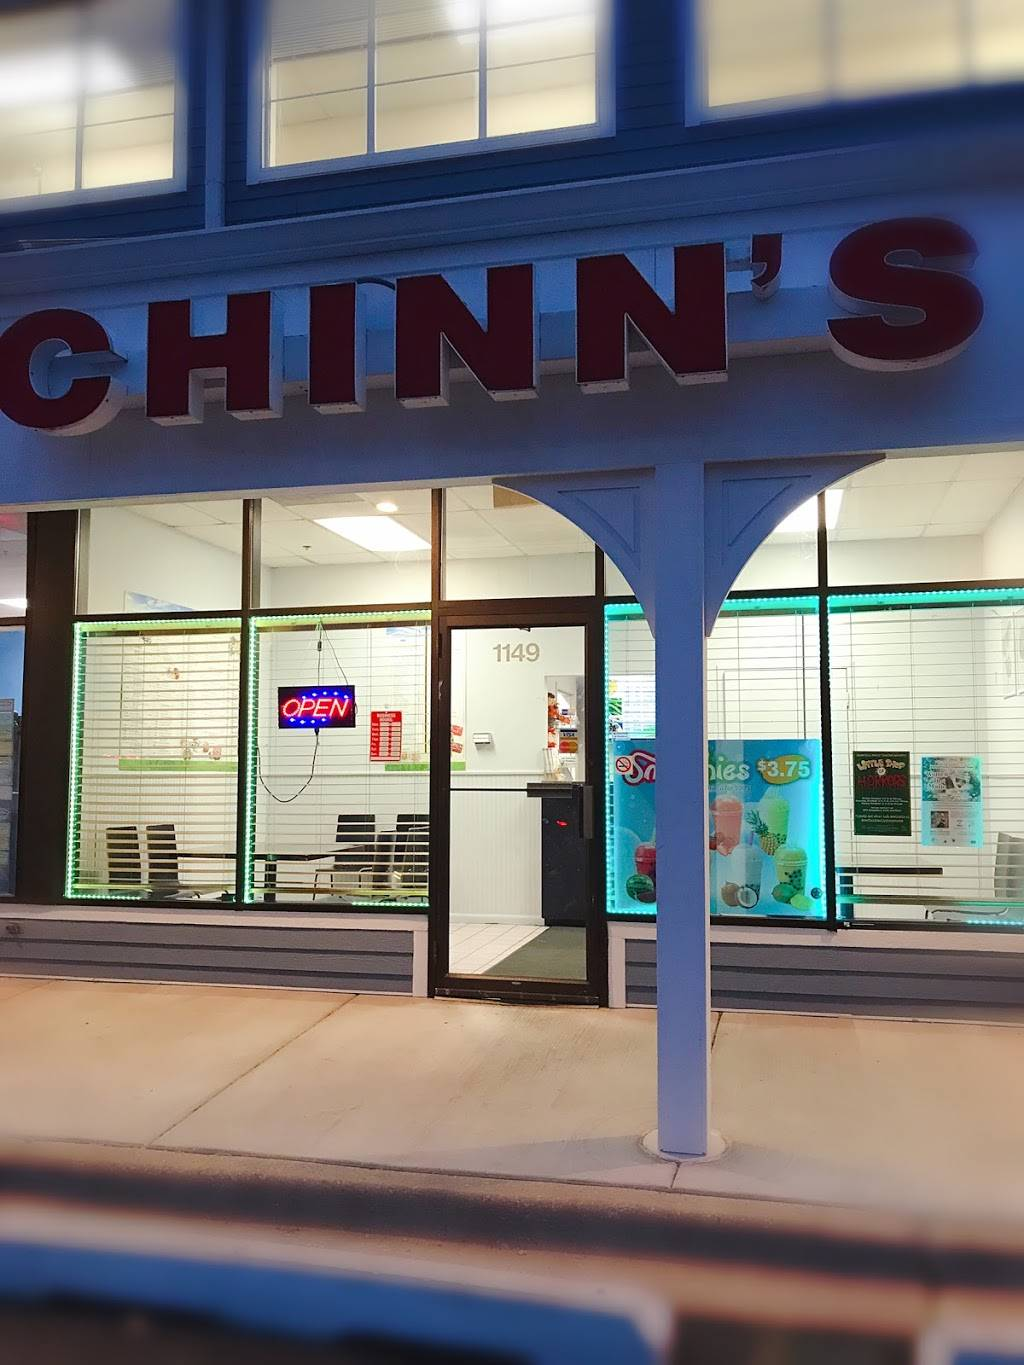 Chinns Chinese Restaurant | restaurant | 1149 McHenry Rd, Buffalo Grove, IL 60089, USA | 8479139096 OR +1 847-913-9096